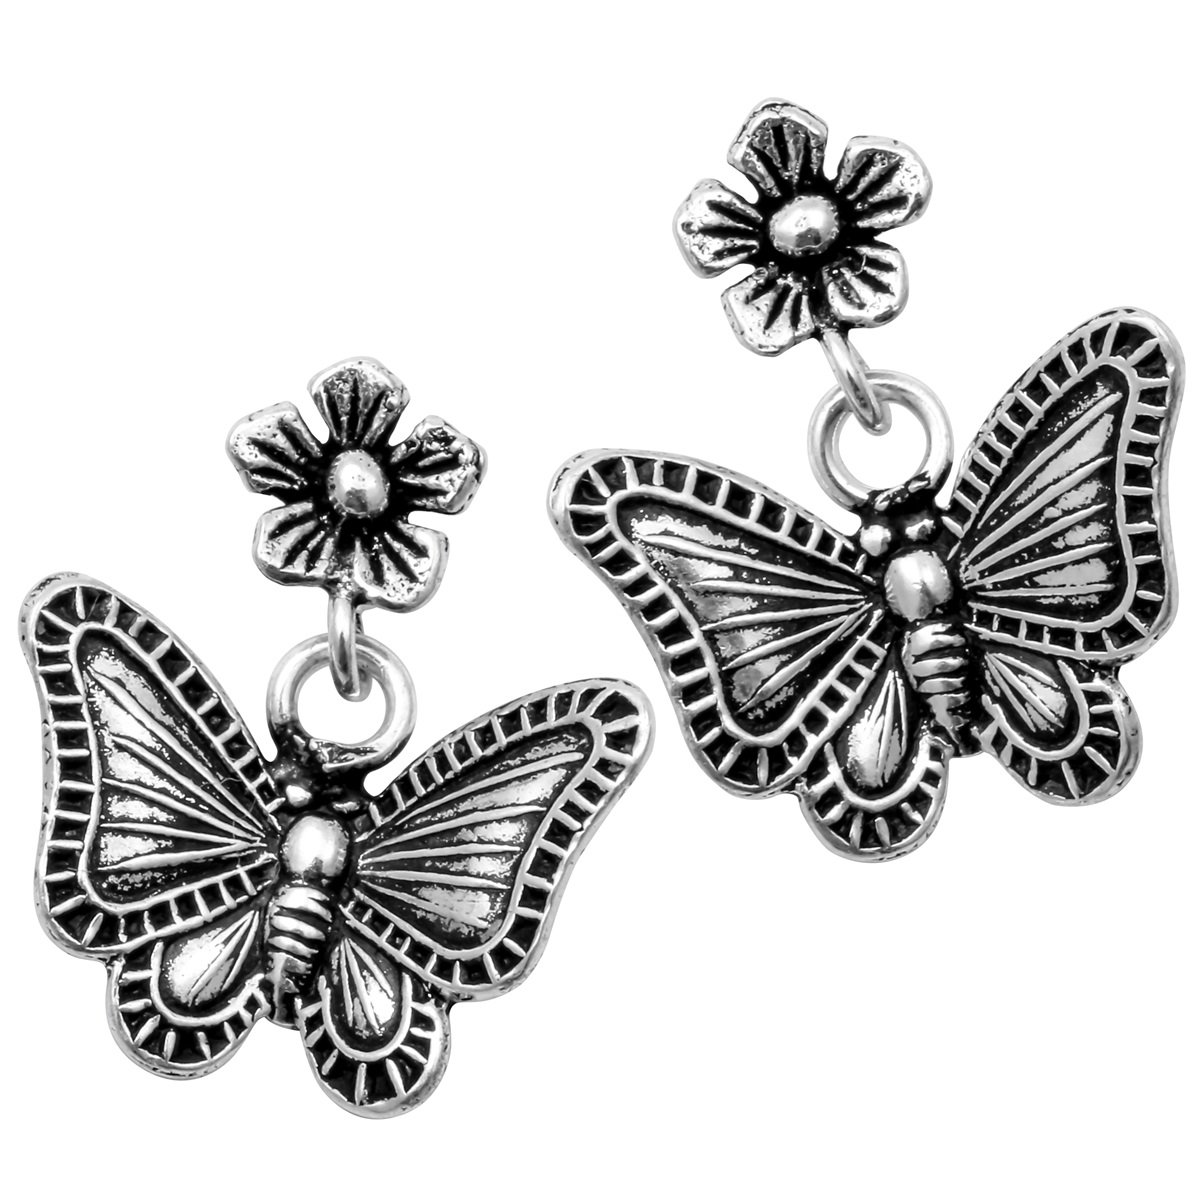 YACQ Jewelry 925 Sterling Silver Butterfly Wings Flower Earrings for Women Teen Girls CE02